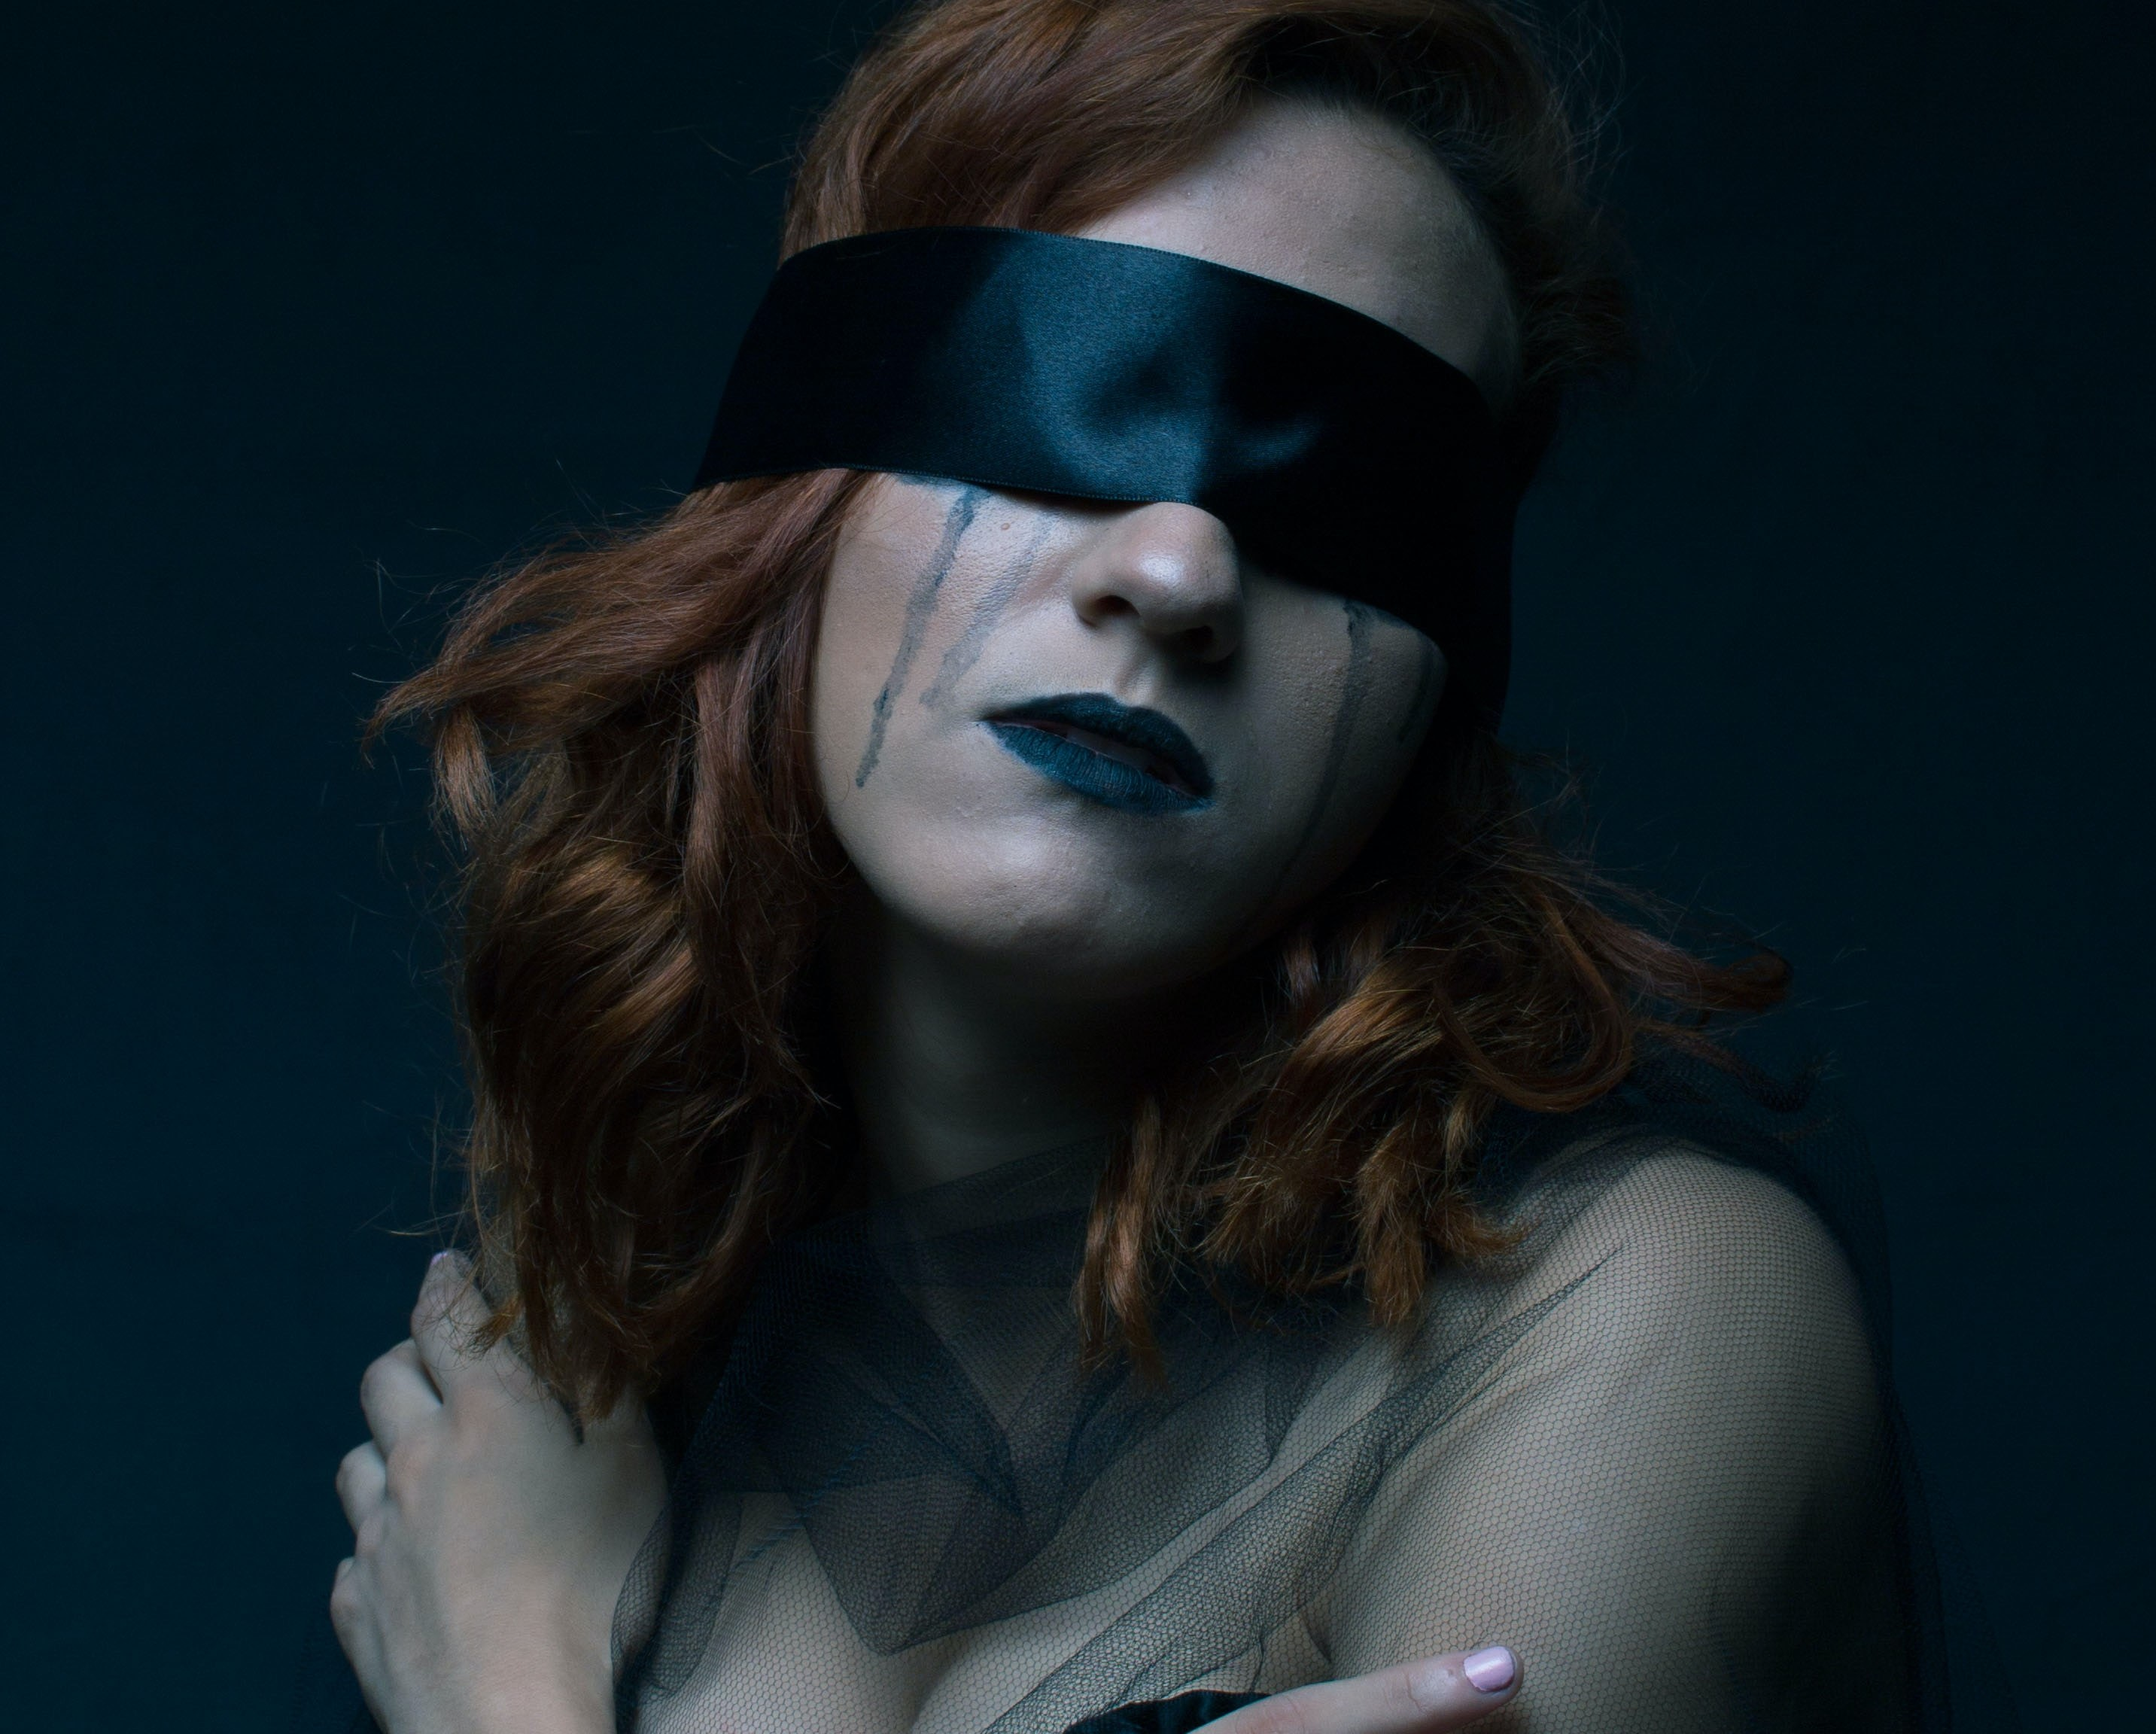 Blindfolded woman crying with mascara running while wearing lingerie